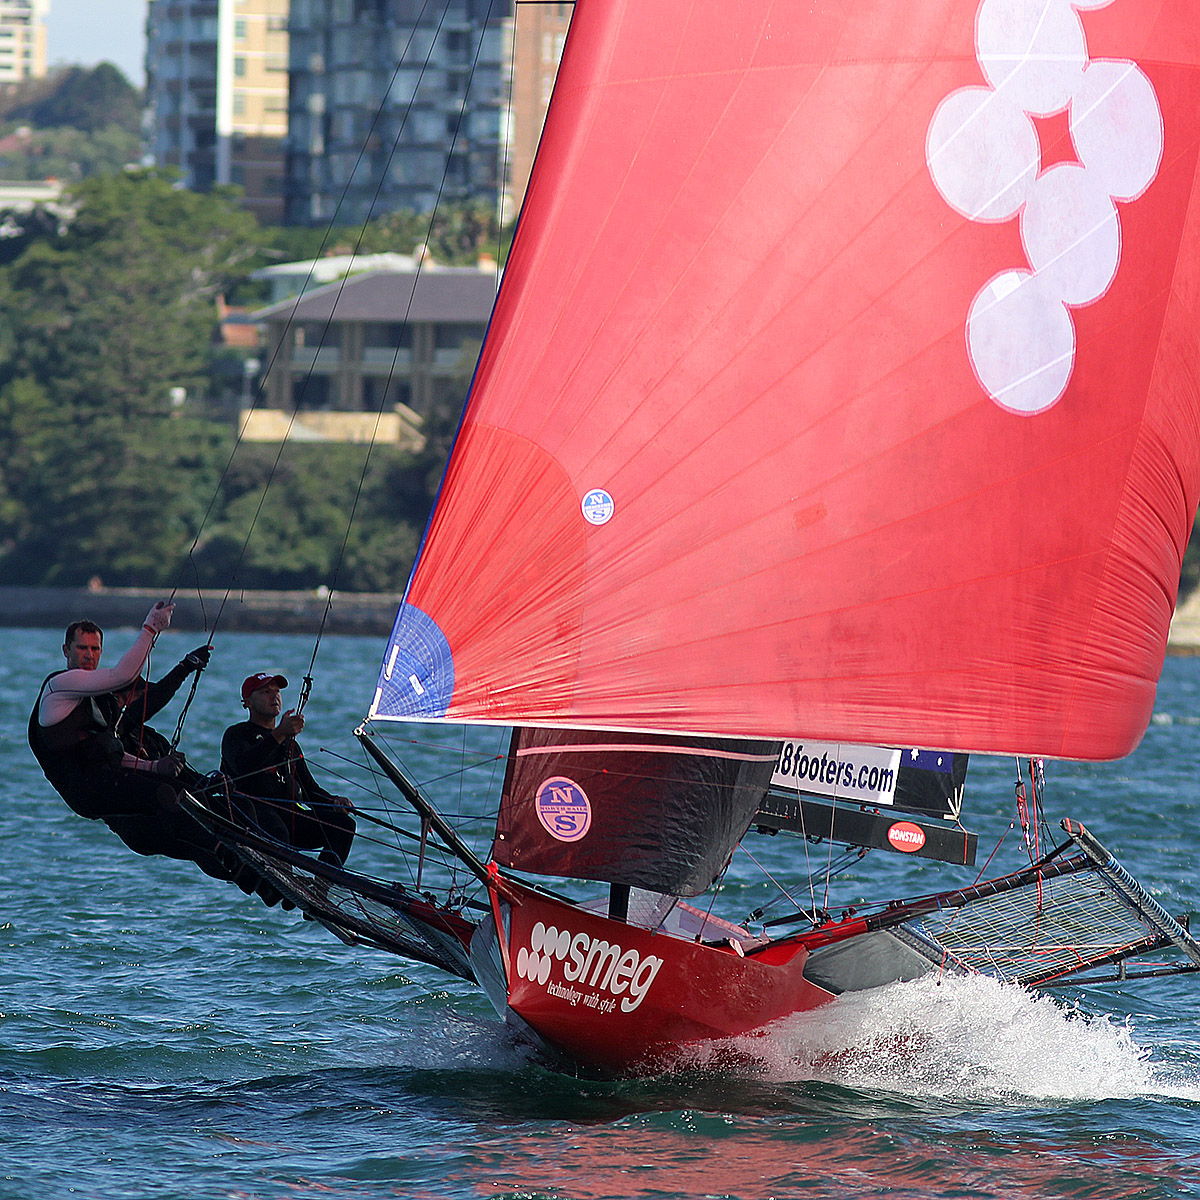 SMEG on the way to a race win at the 2018 JJ Giltinan Championship. Photo Michael Crittenden.